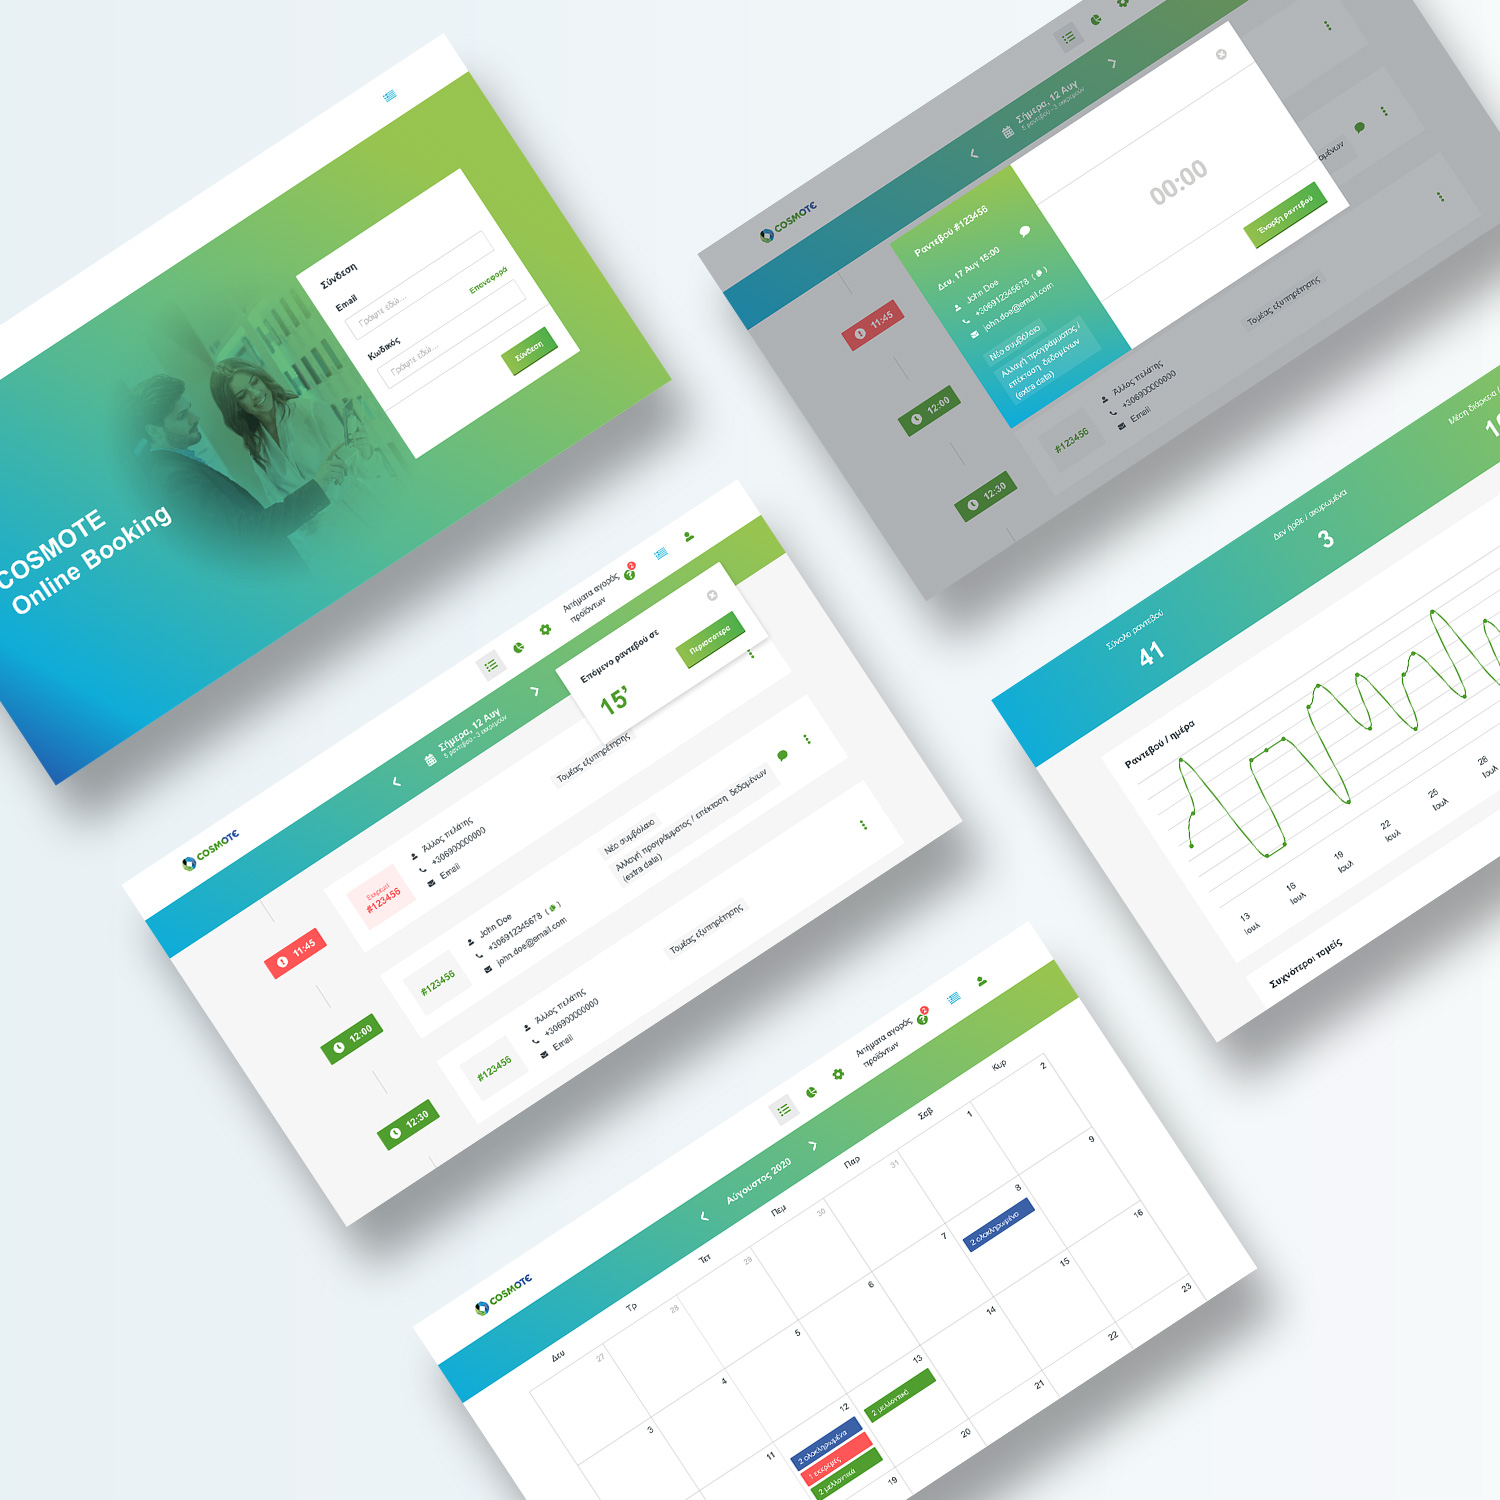 Cosmote appointments - Desktop